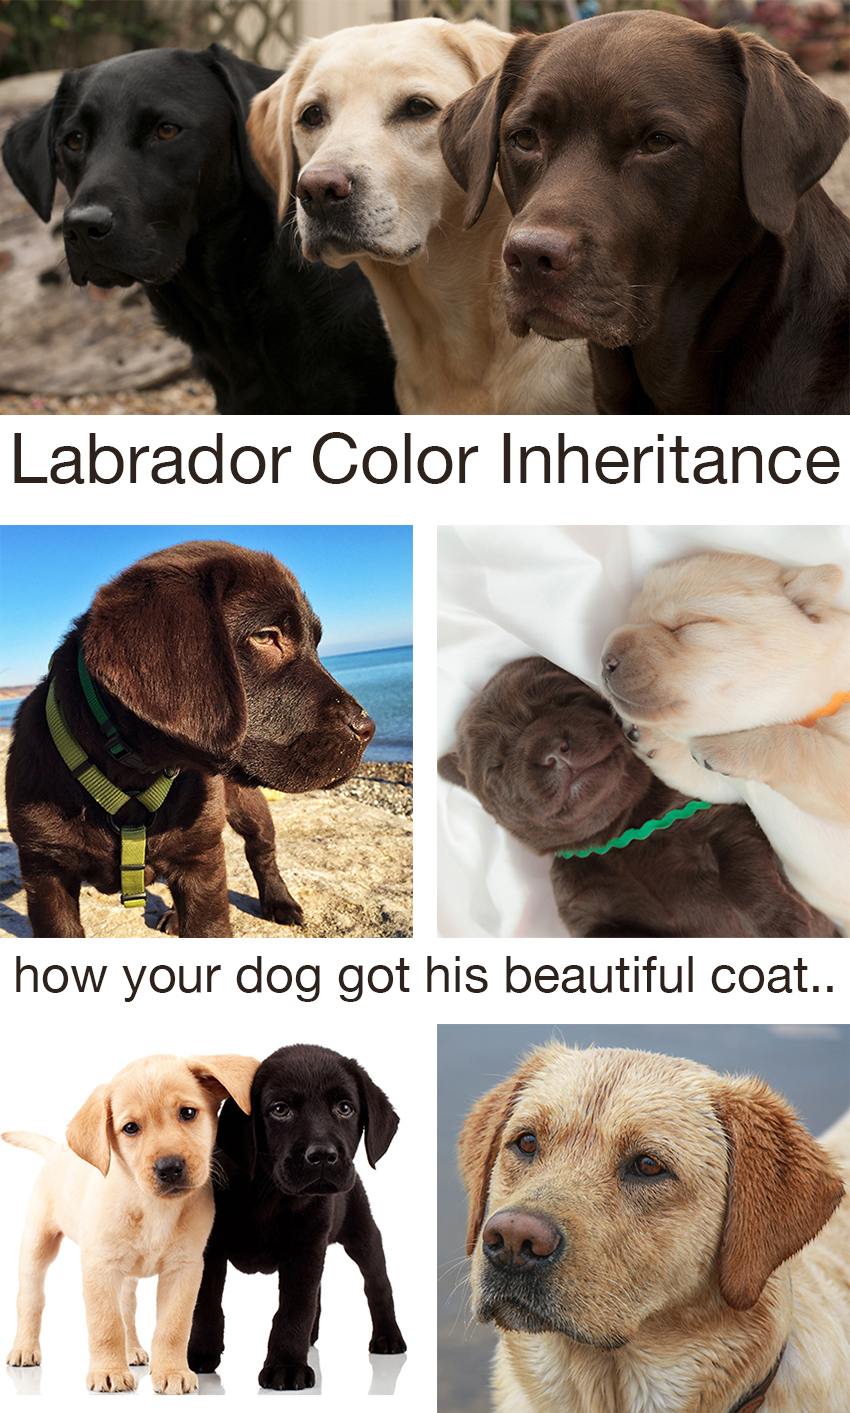 Labrador color inheritance with new puppy color charts find out how your lab got his coat color includes helpful charts to predict puppy nvjuhfo Images